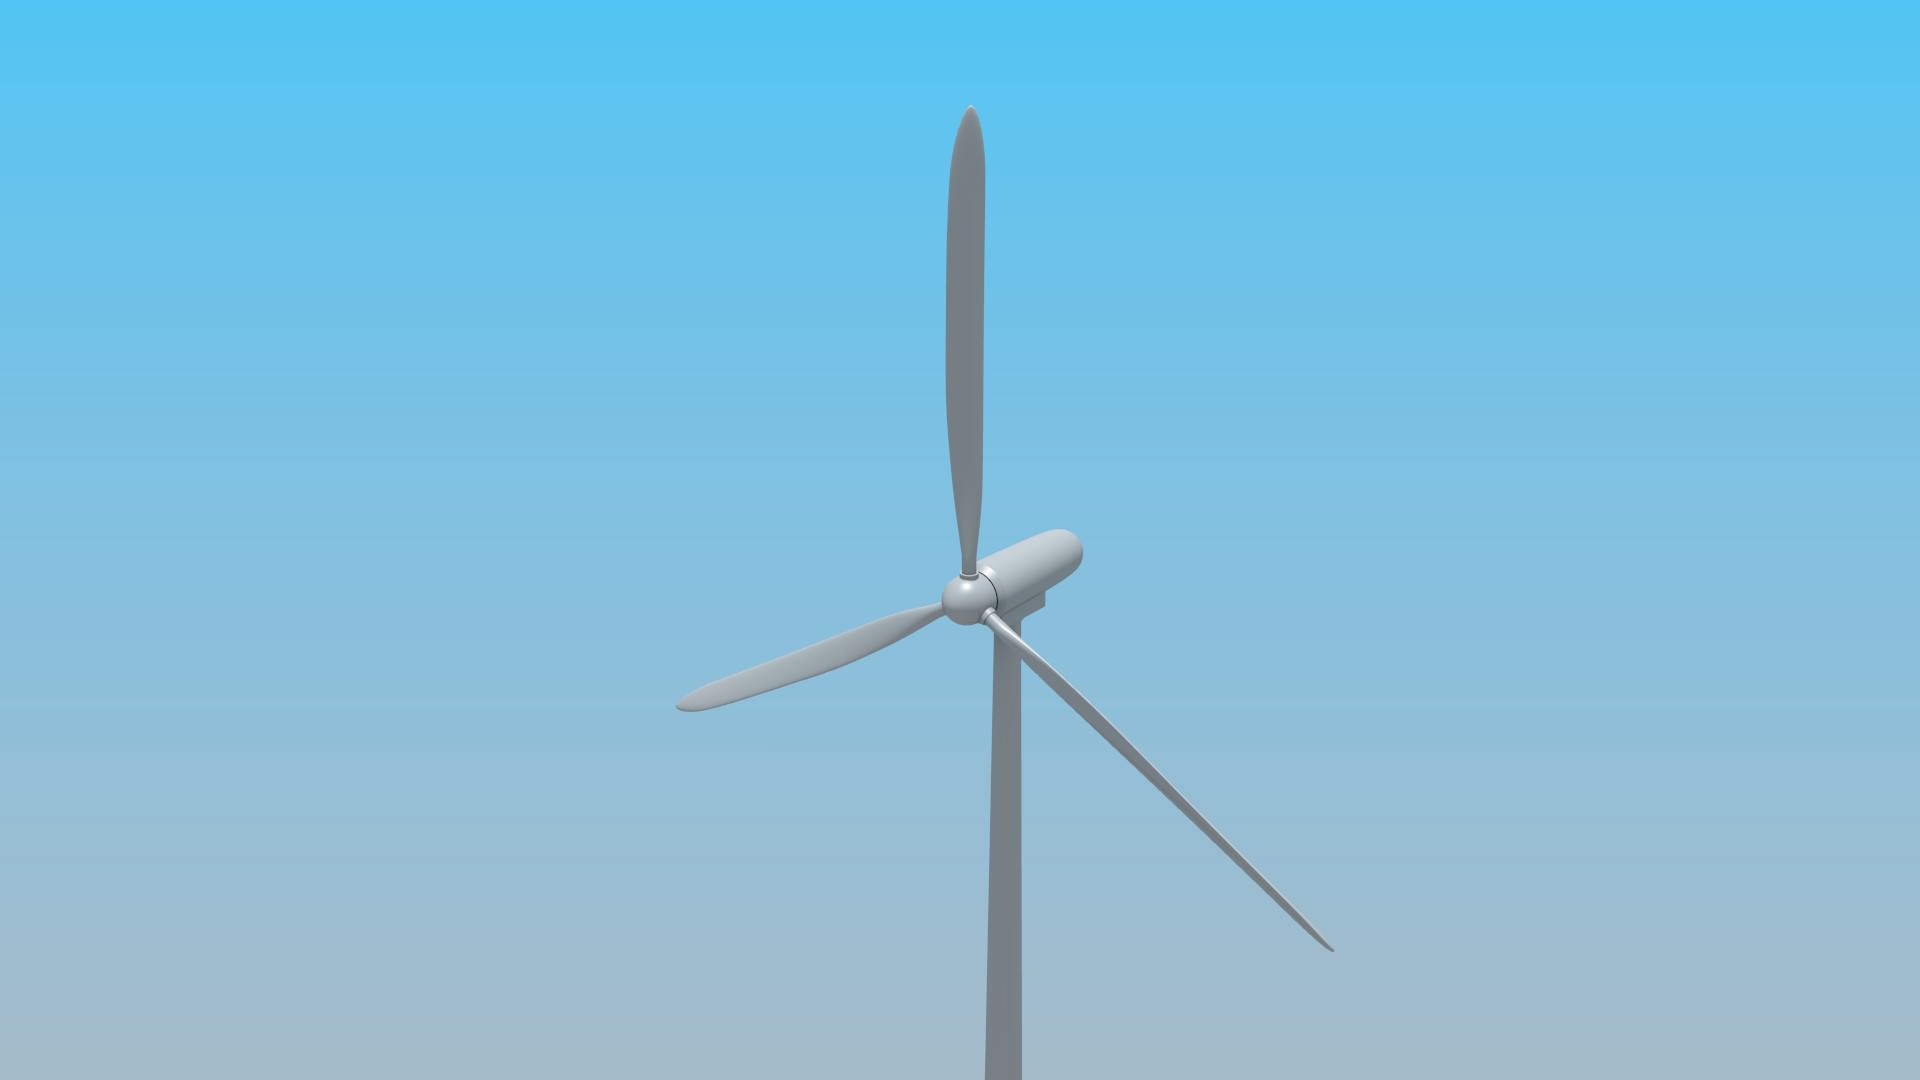 31k 0 description comments 0 wind turbine 3d model a wind turbine ...